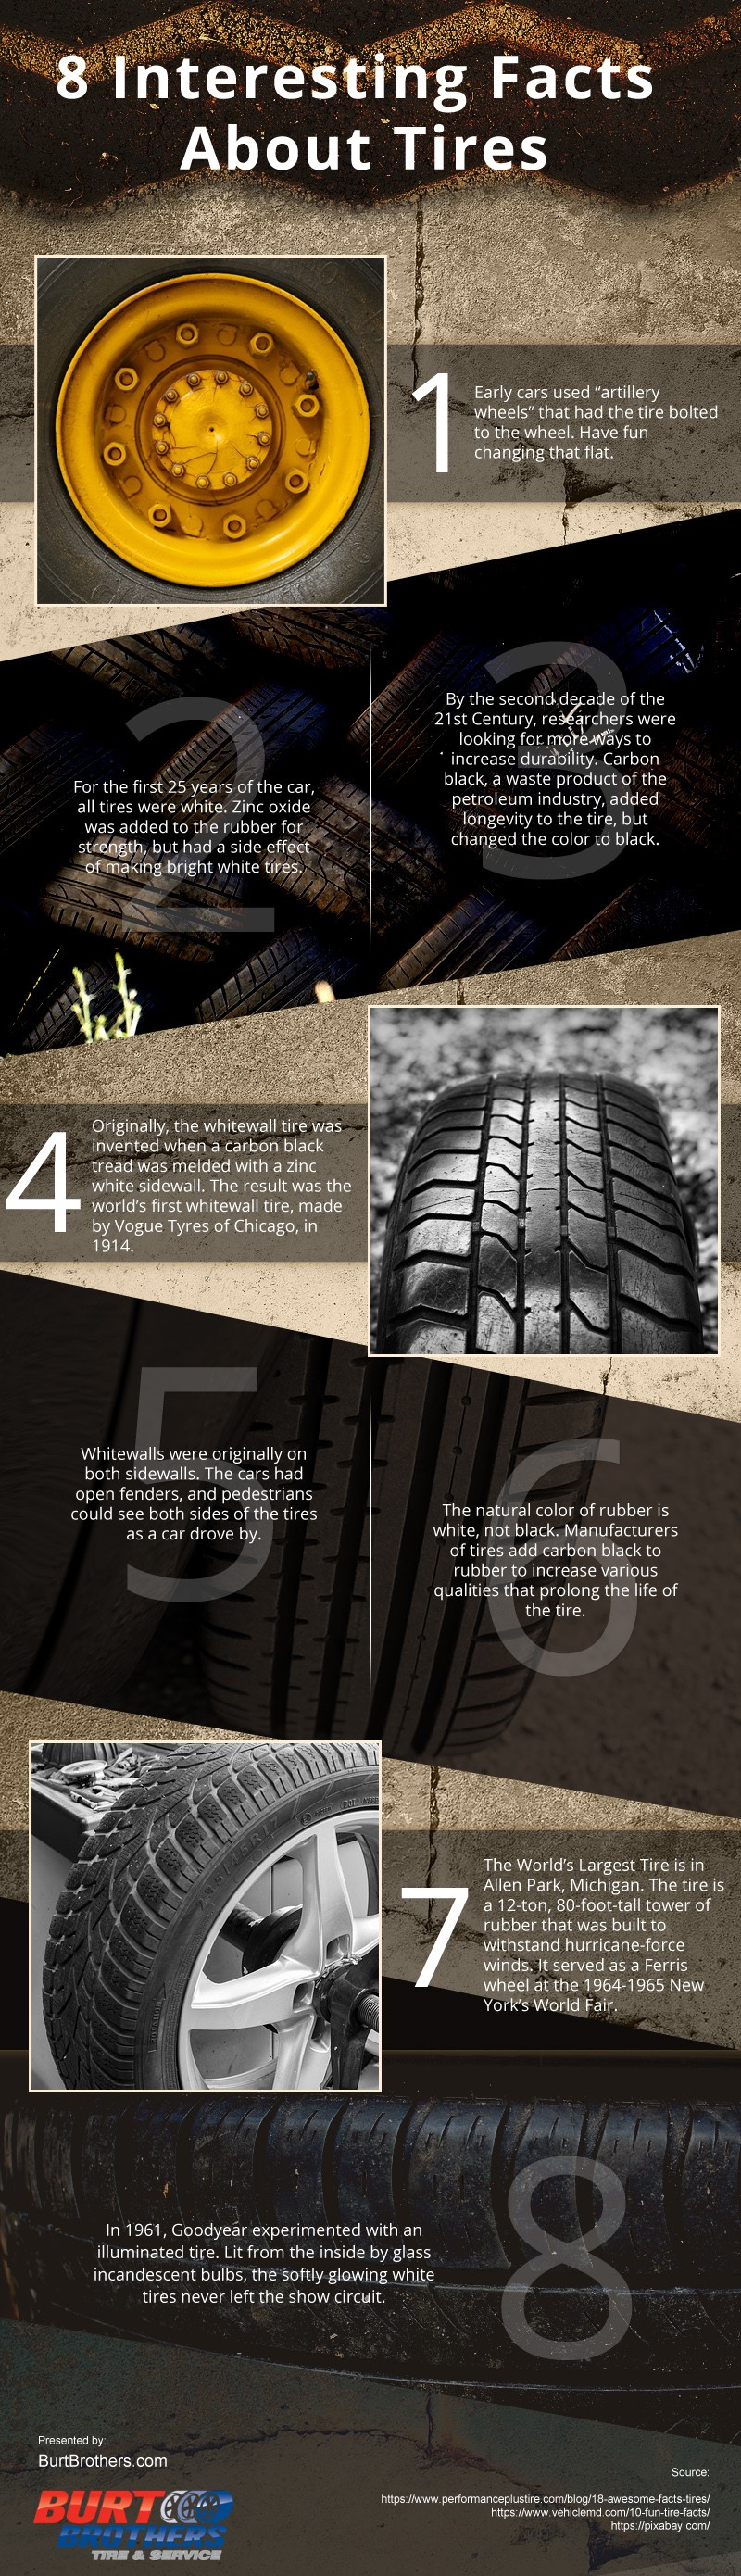 Interesting Facts About Tires